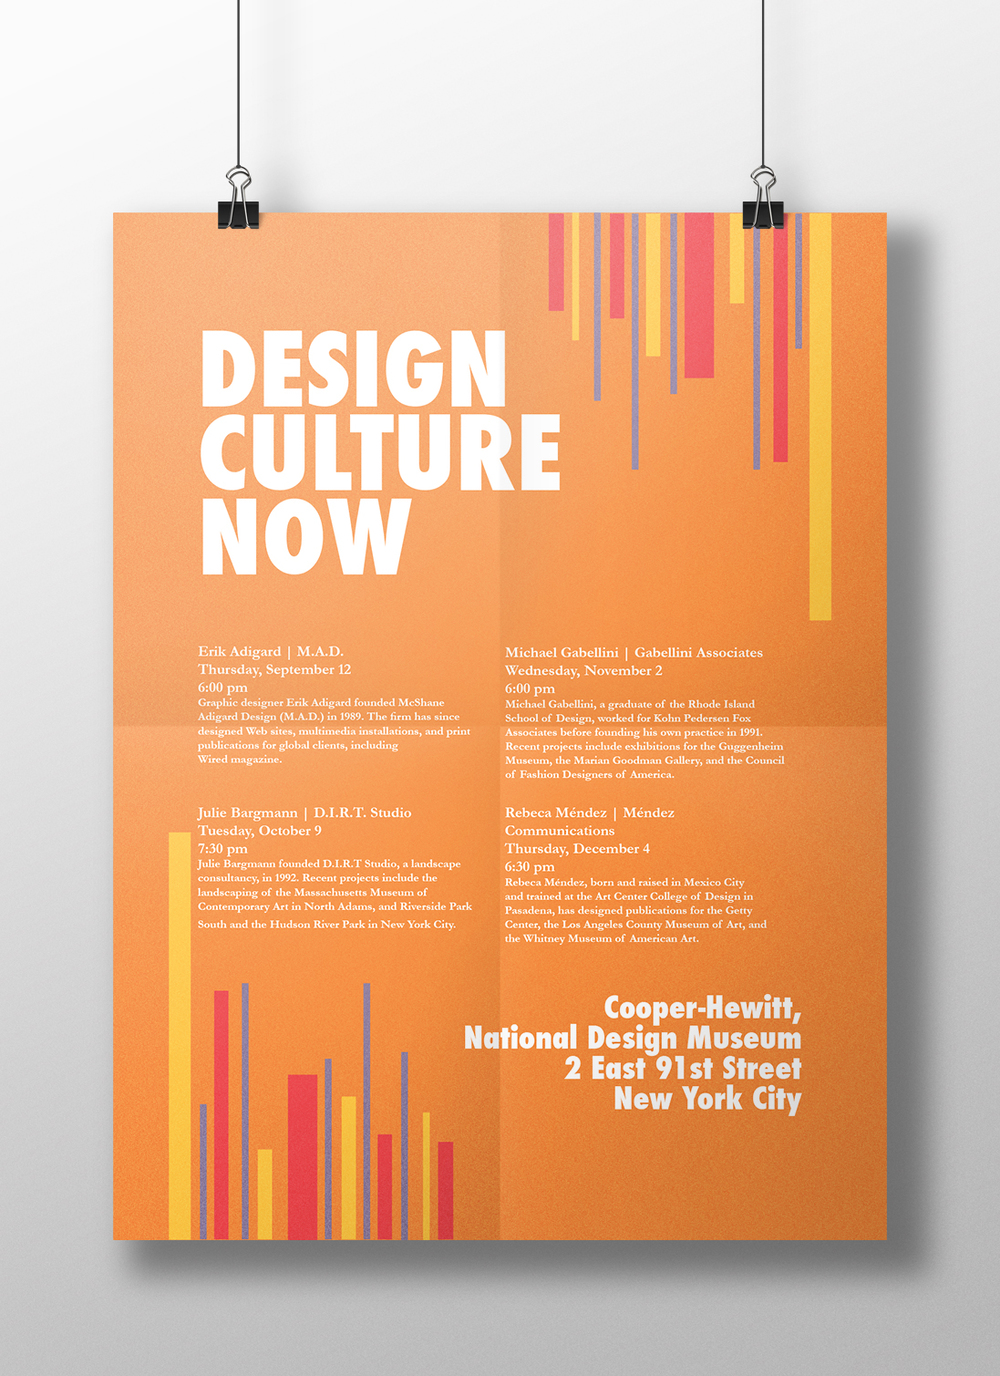 lecture series poster courtney blair designs